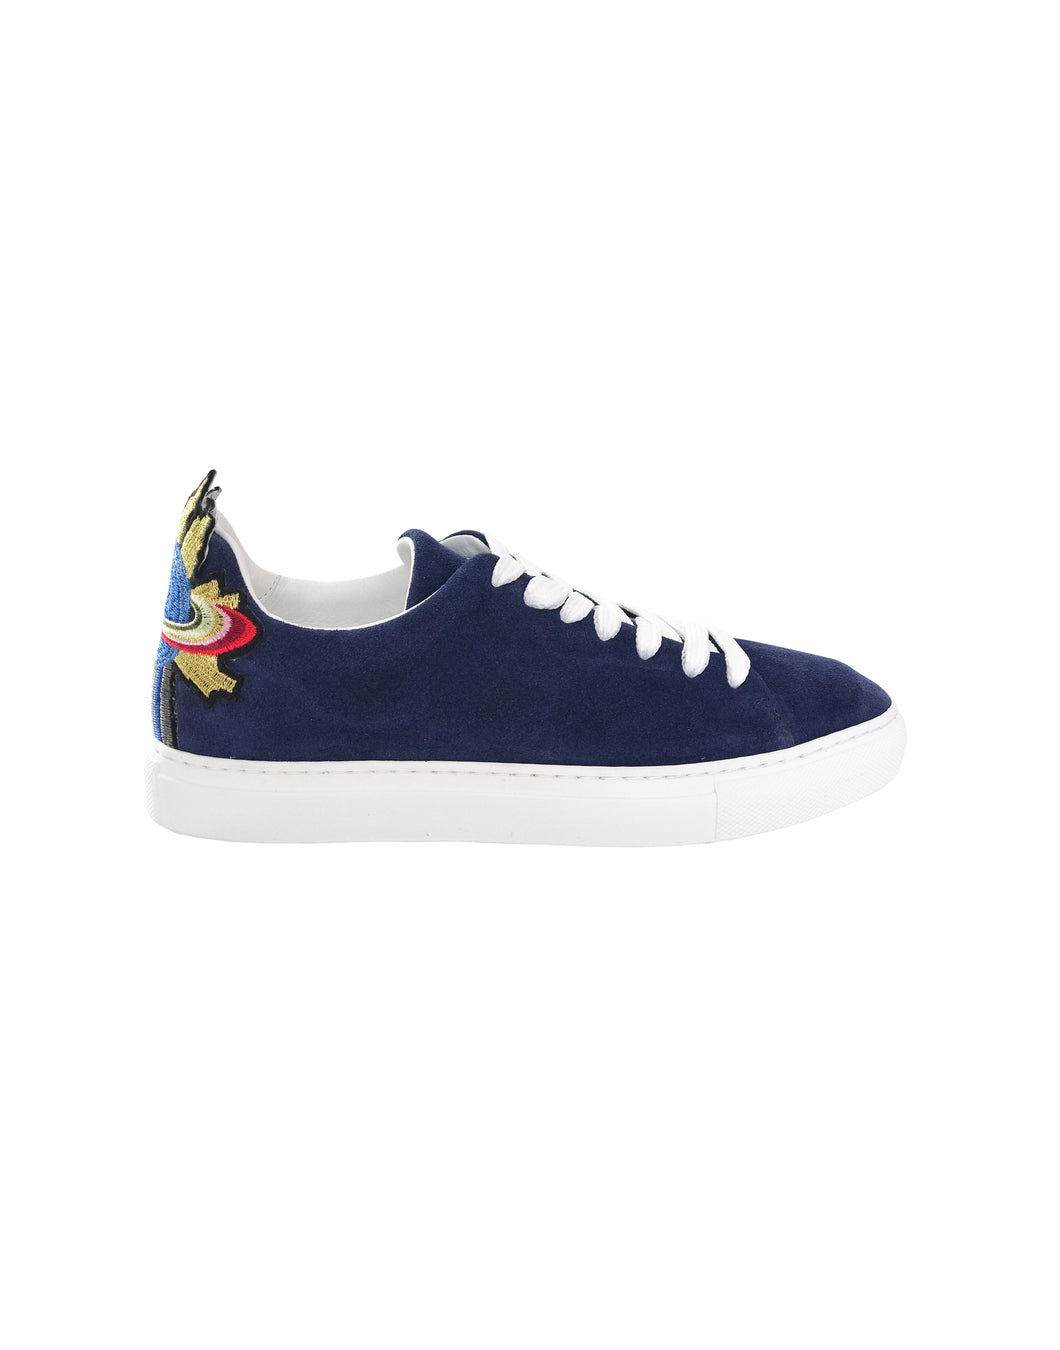 Saturn Sneaker Navy Blue